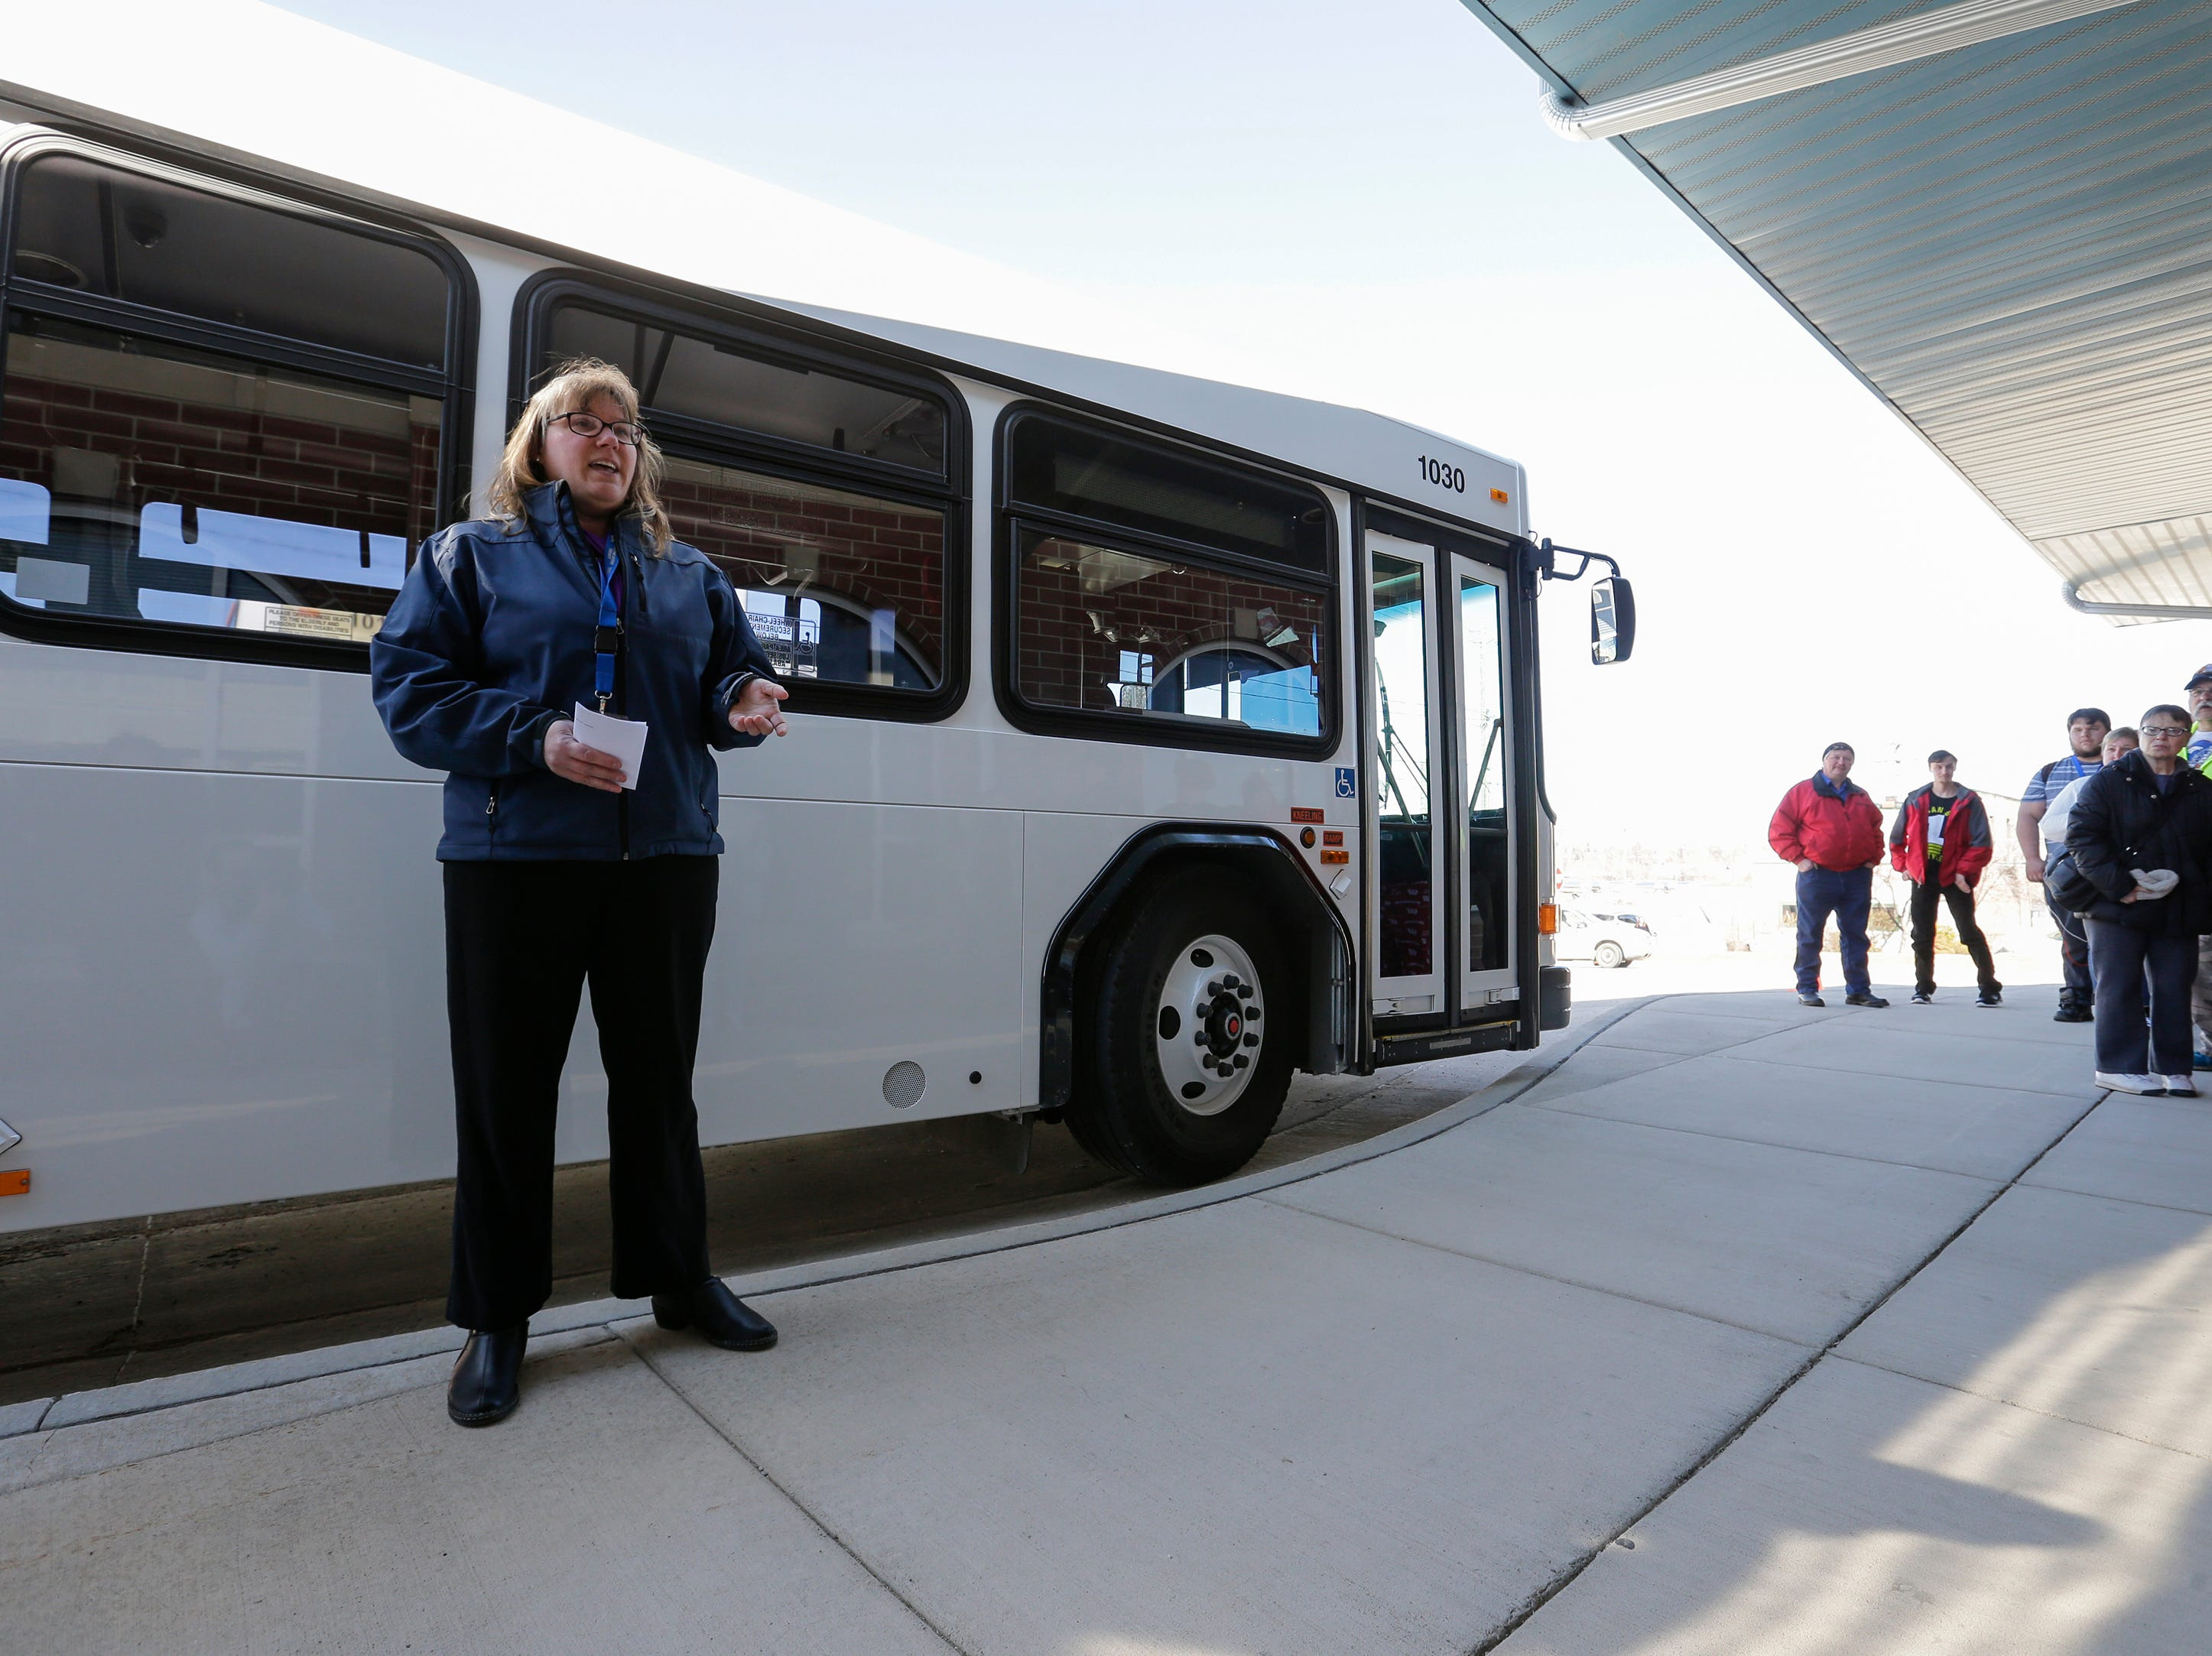 Maritime Metro Transit interim manager Marlo Kohlmann introduces one of six new city buses outside the Maritime Metro Transit transfer station Monday, March 25, 2019, in Manitowoc, Wis. The new buses feature better fuel economy, lower emissions, an updated video surveillance system, an automatic securement system for people with disabilities and the capability to incorporate a real-time transit app for mobile devices which the city hopes to implement in the future. The buses go into service today, replacing old buses with more than 600,000 miles purchased between 2004 and 2005. Joshua Clark/USA TODAY NETWORK-Wisconsin